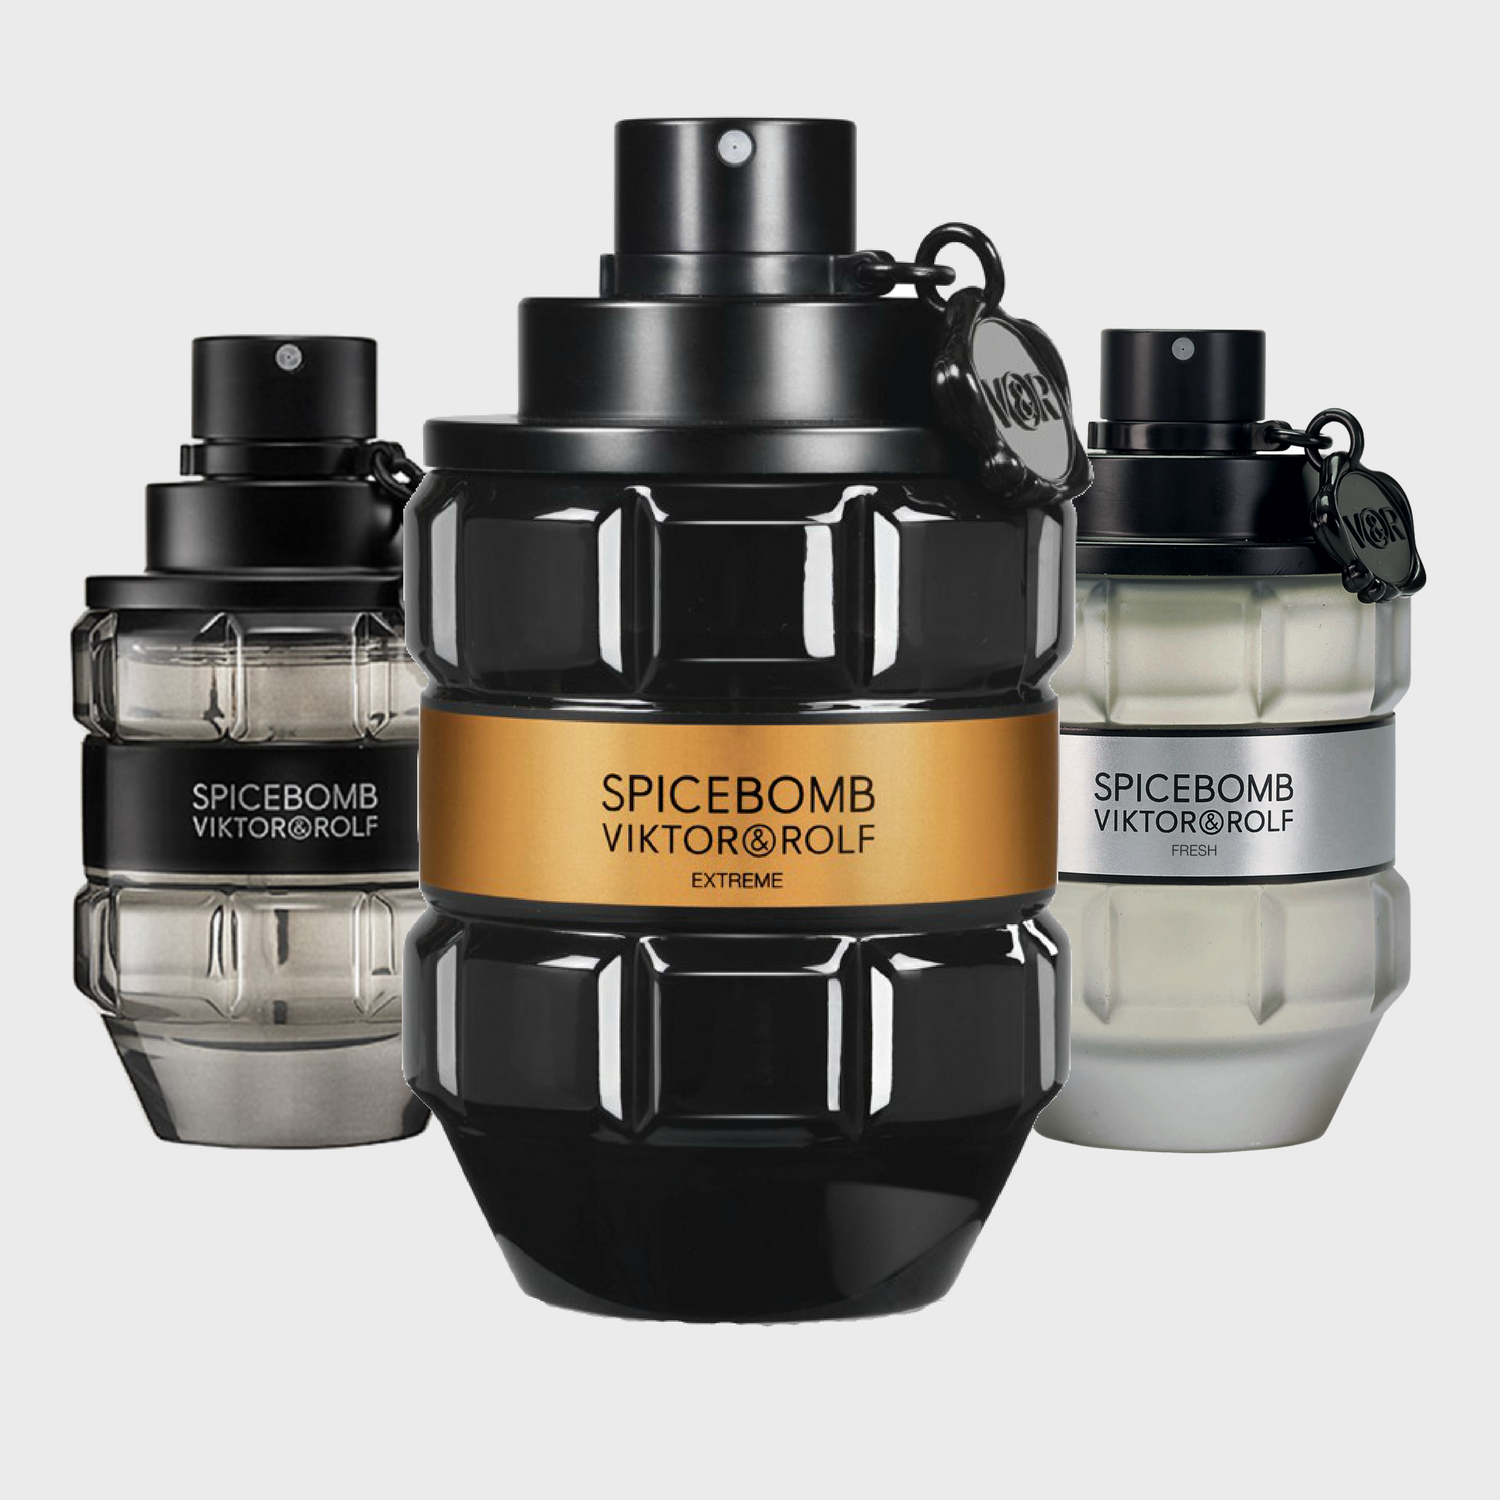 Which is best? Spicebomb, Spicebomb Extreme, or Spicebomb Fresh?